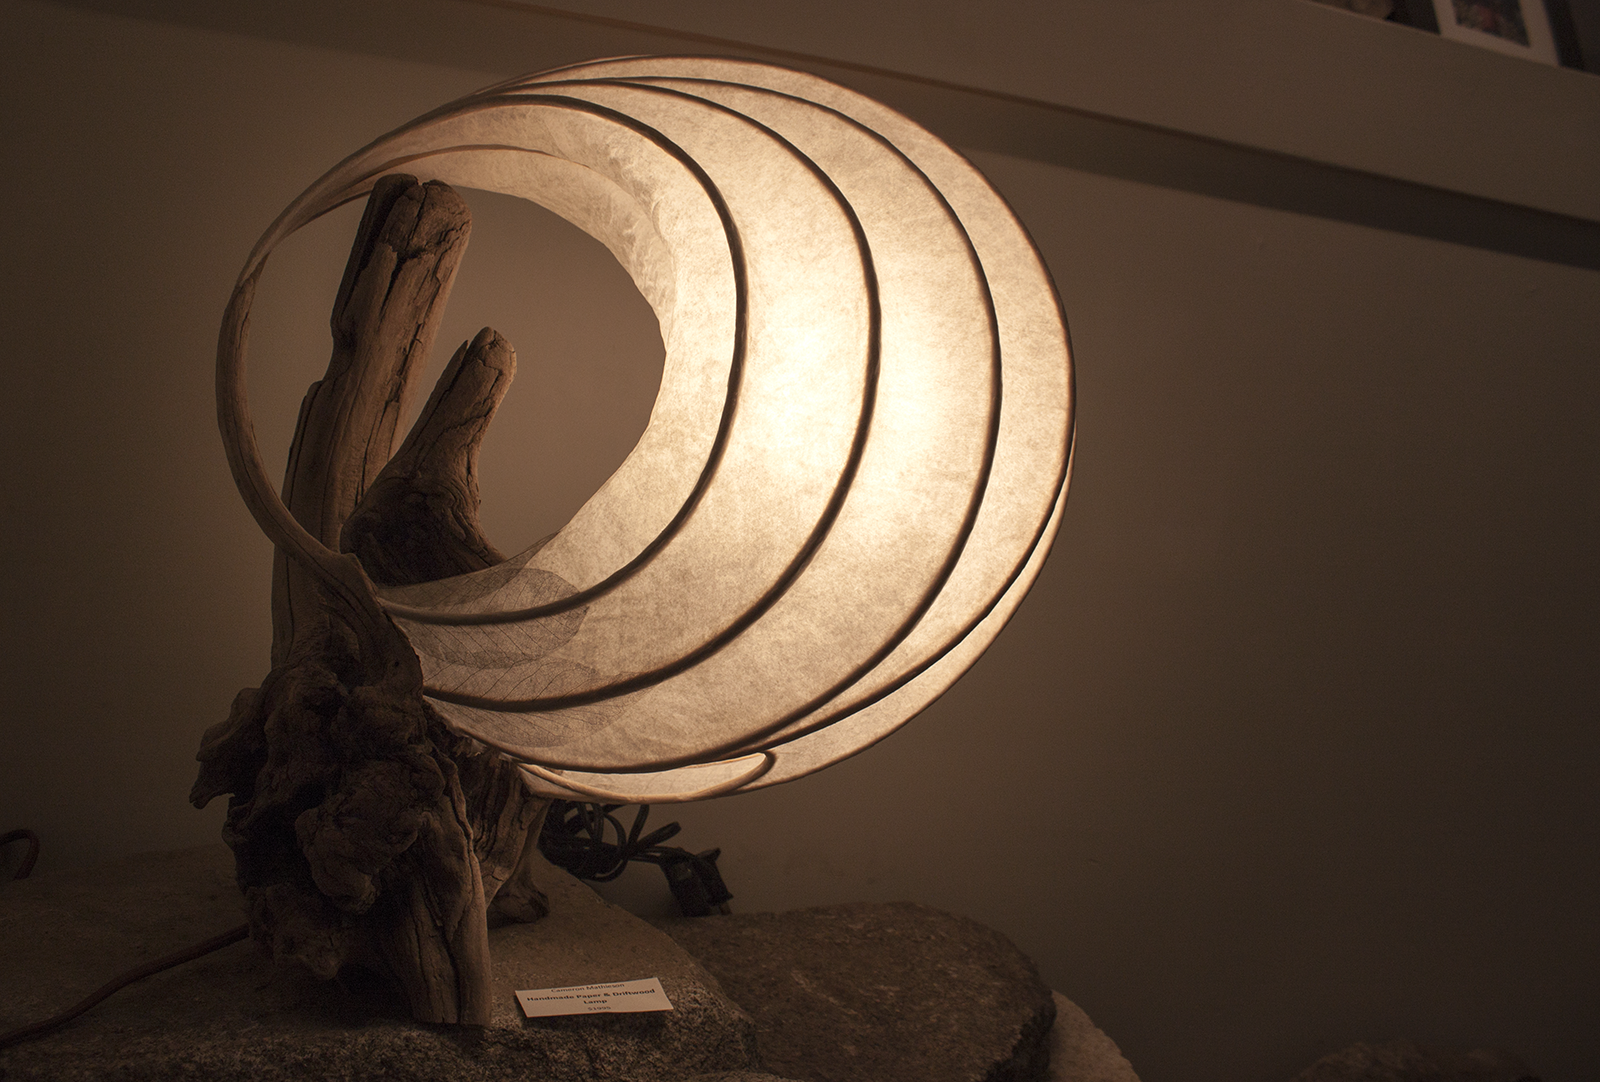 Custom driftwood table lamp from the Craft Connection in Nelson.